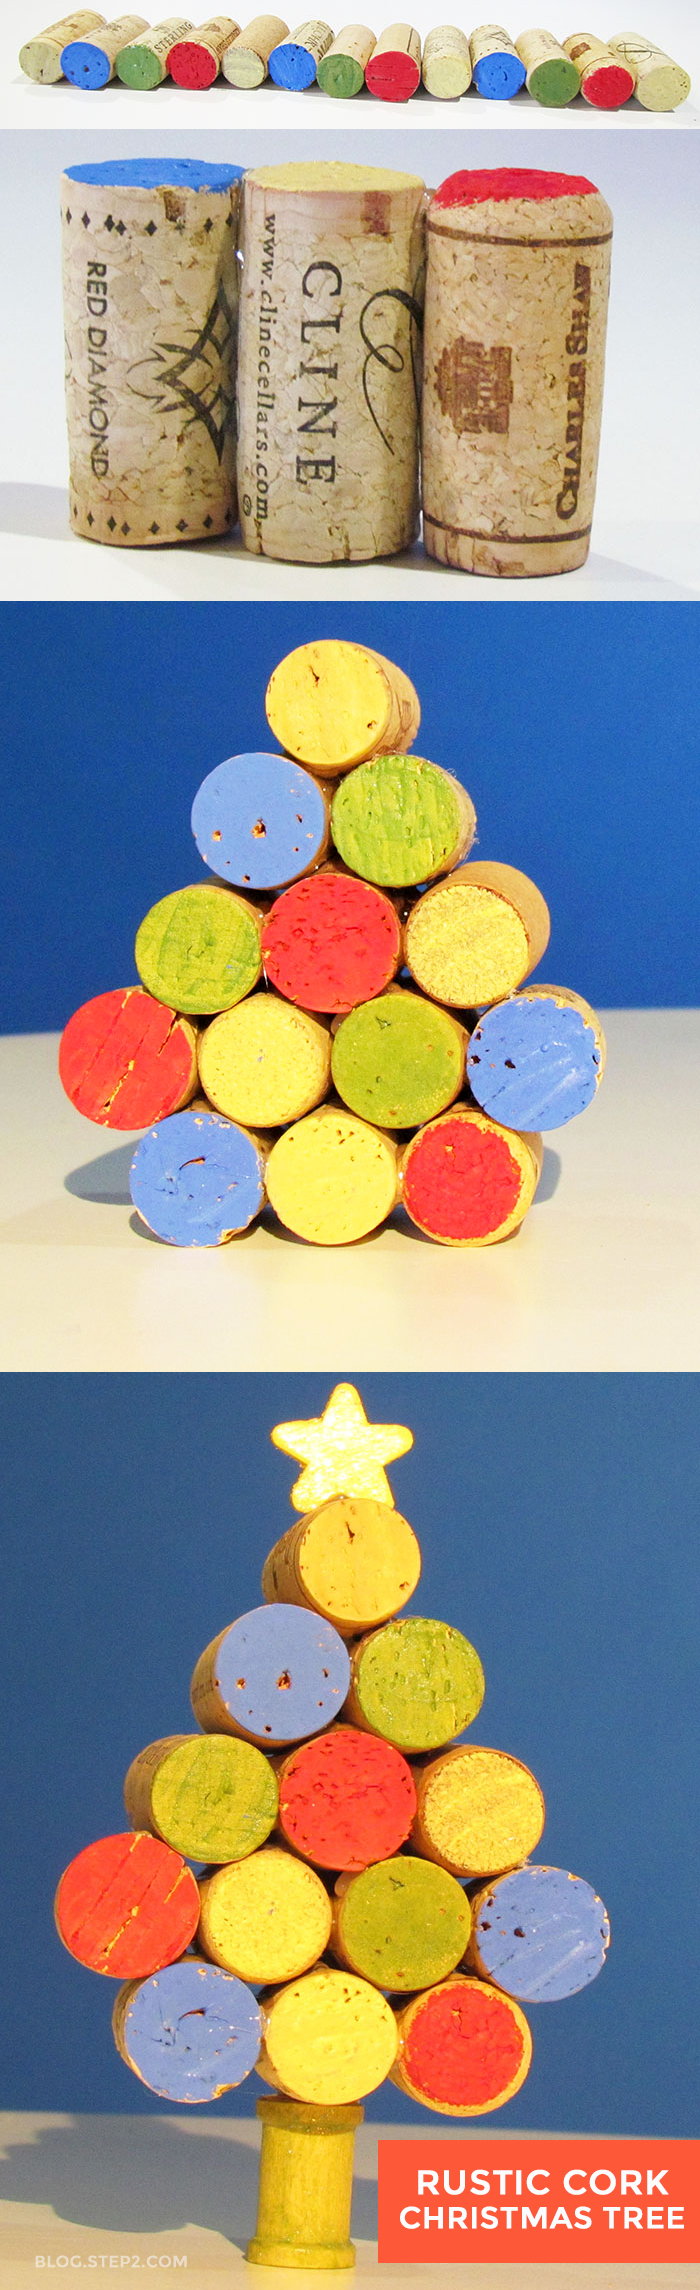 Looking for a fun and simple [parent] Christmas craft? Make a Rustic Cork Christmas Tree! Great for a teacher gift or holiday decor.